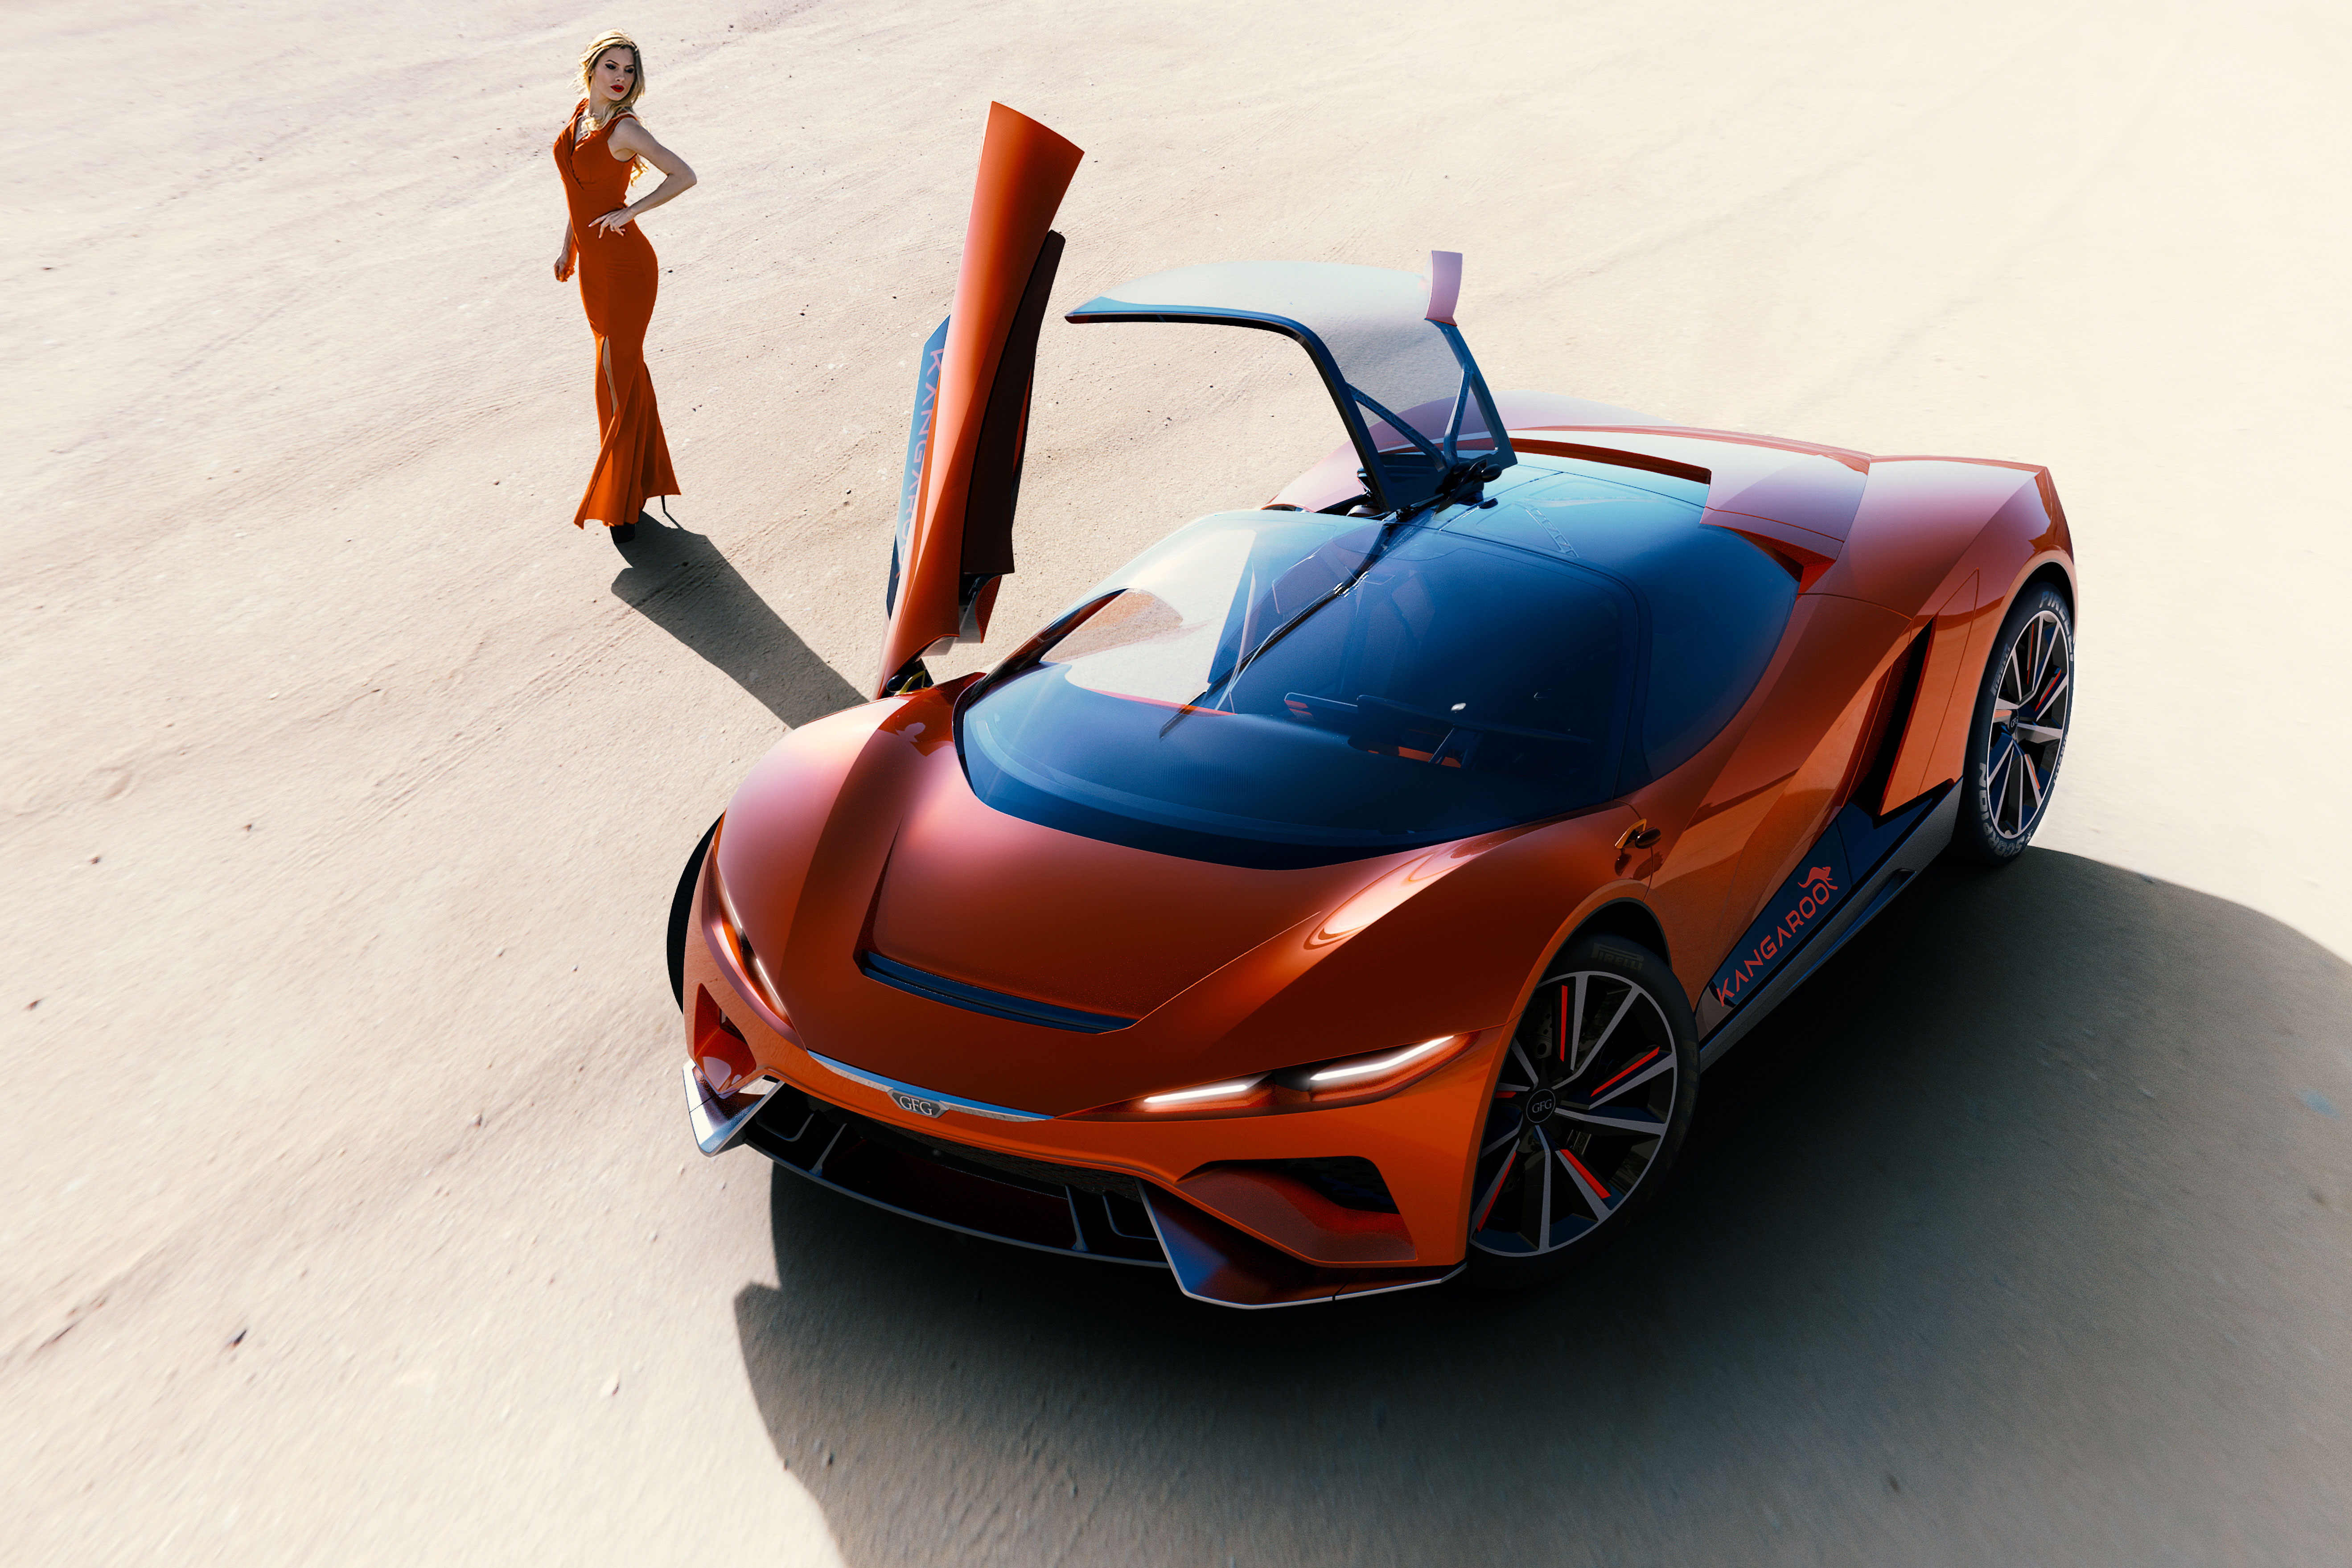 Are rumours of the demise of the motor show greatly exaggerated after some pretty lacklustre editions of some fairly big international car shows over the